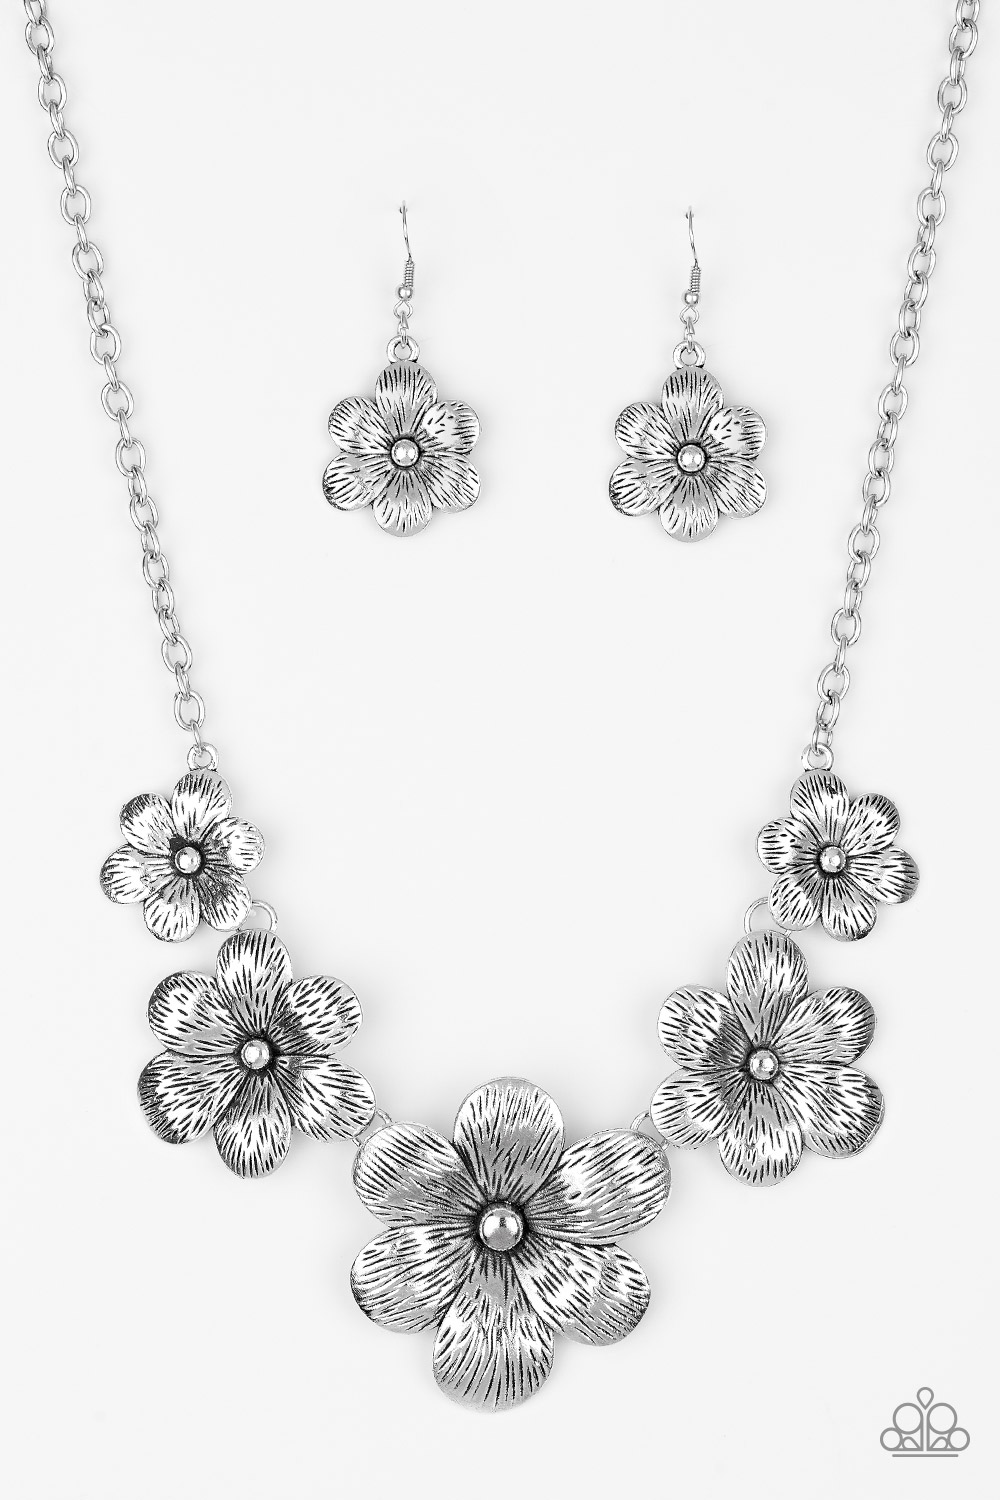 Secret Garden Floral Necklace and Earring Set - Silver $5 www.my-bling.com